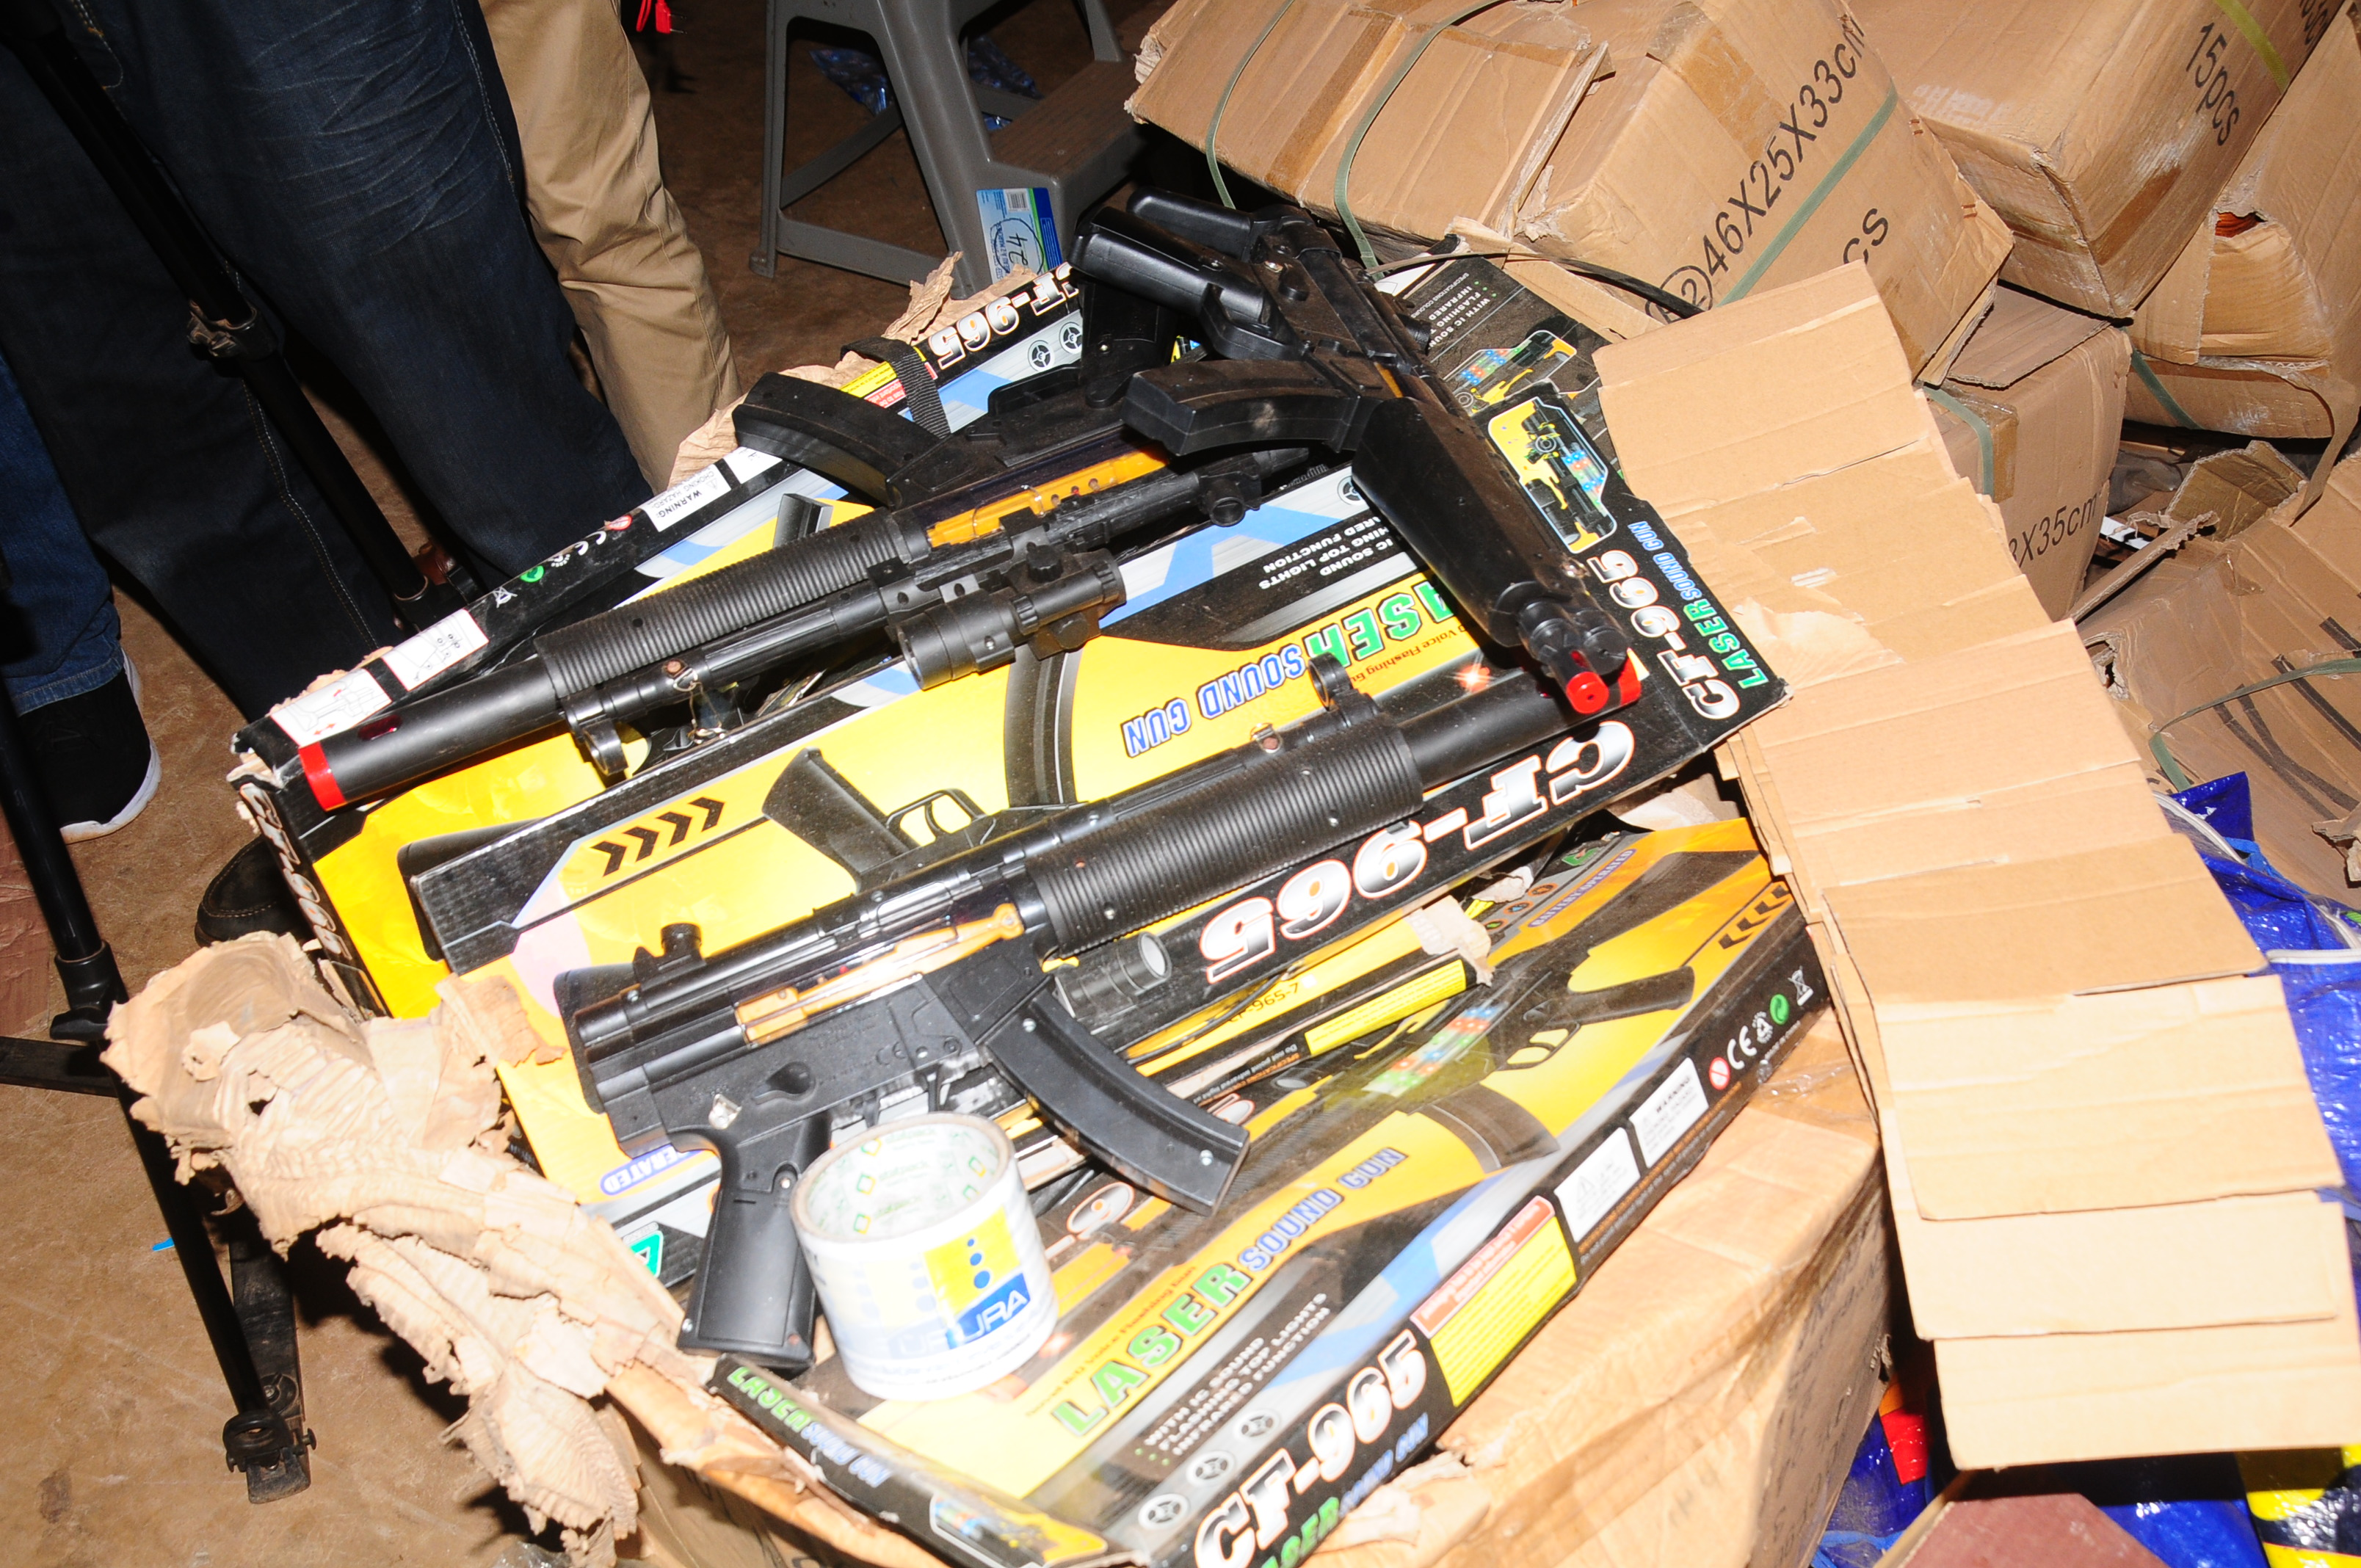 The toy-guns impounded are believed to be used to perpetrate crime in the country(Photo by OGeorge)